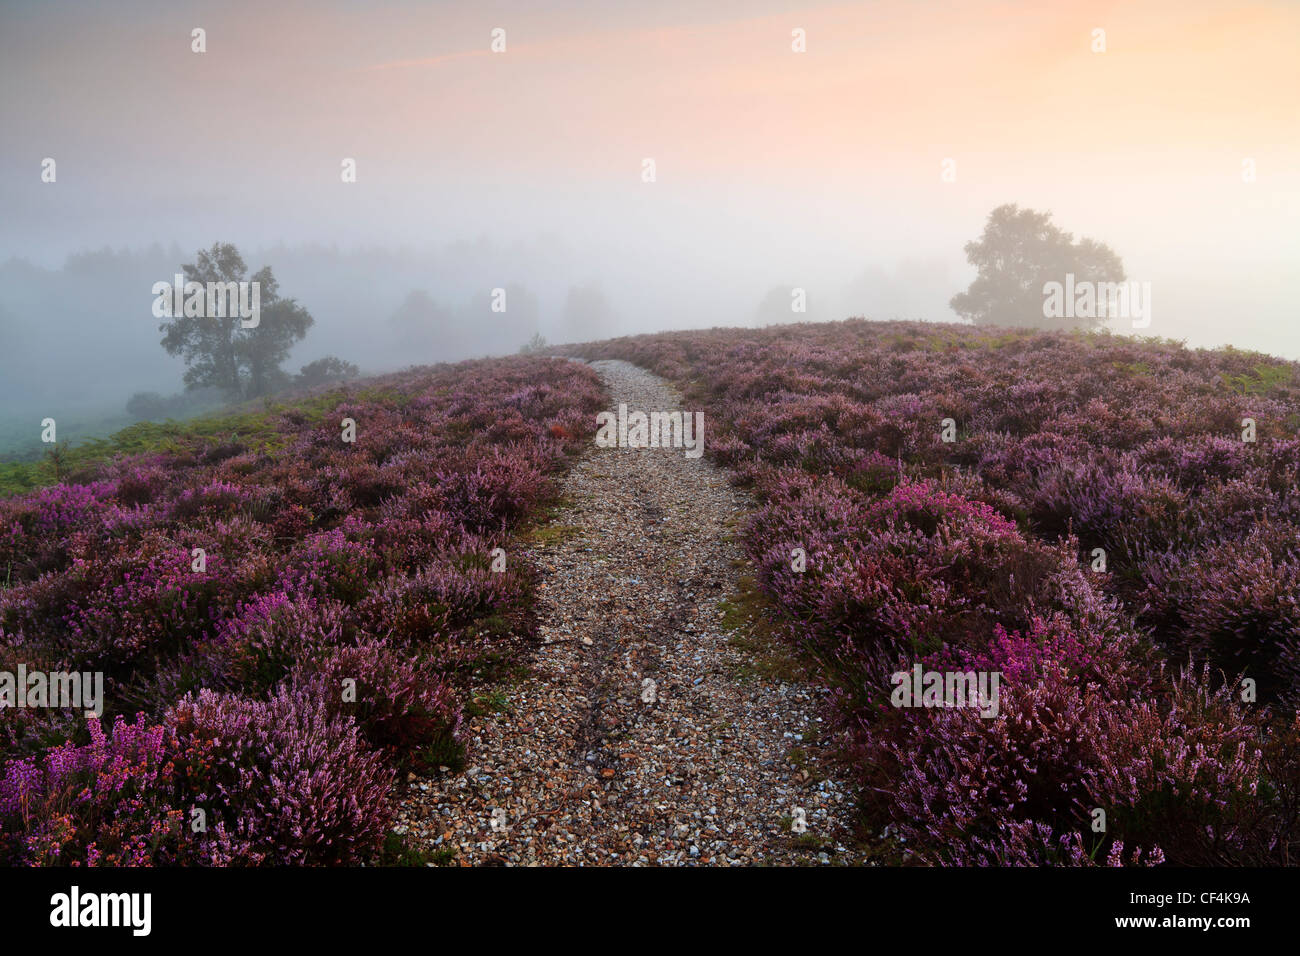 Heather and ferns on Rockford Common in the New Forest at dawn. - Stock Image